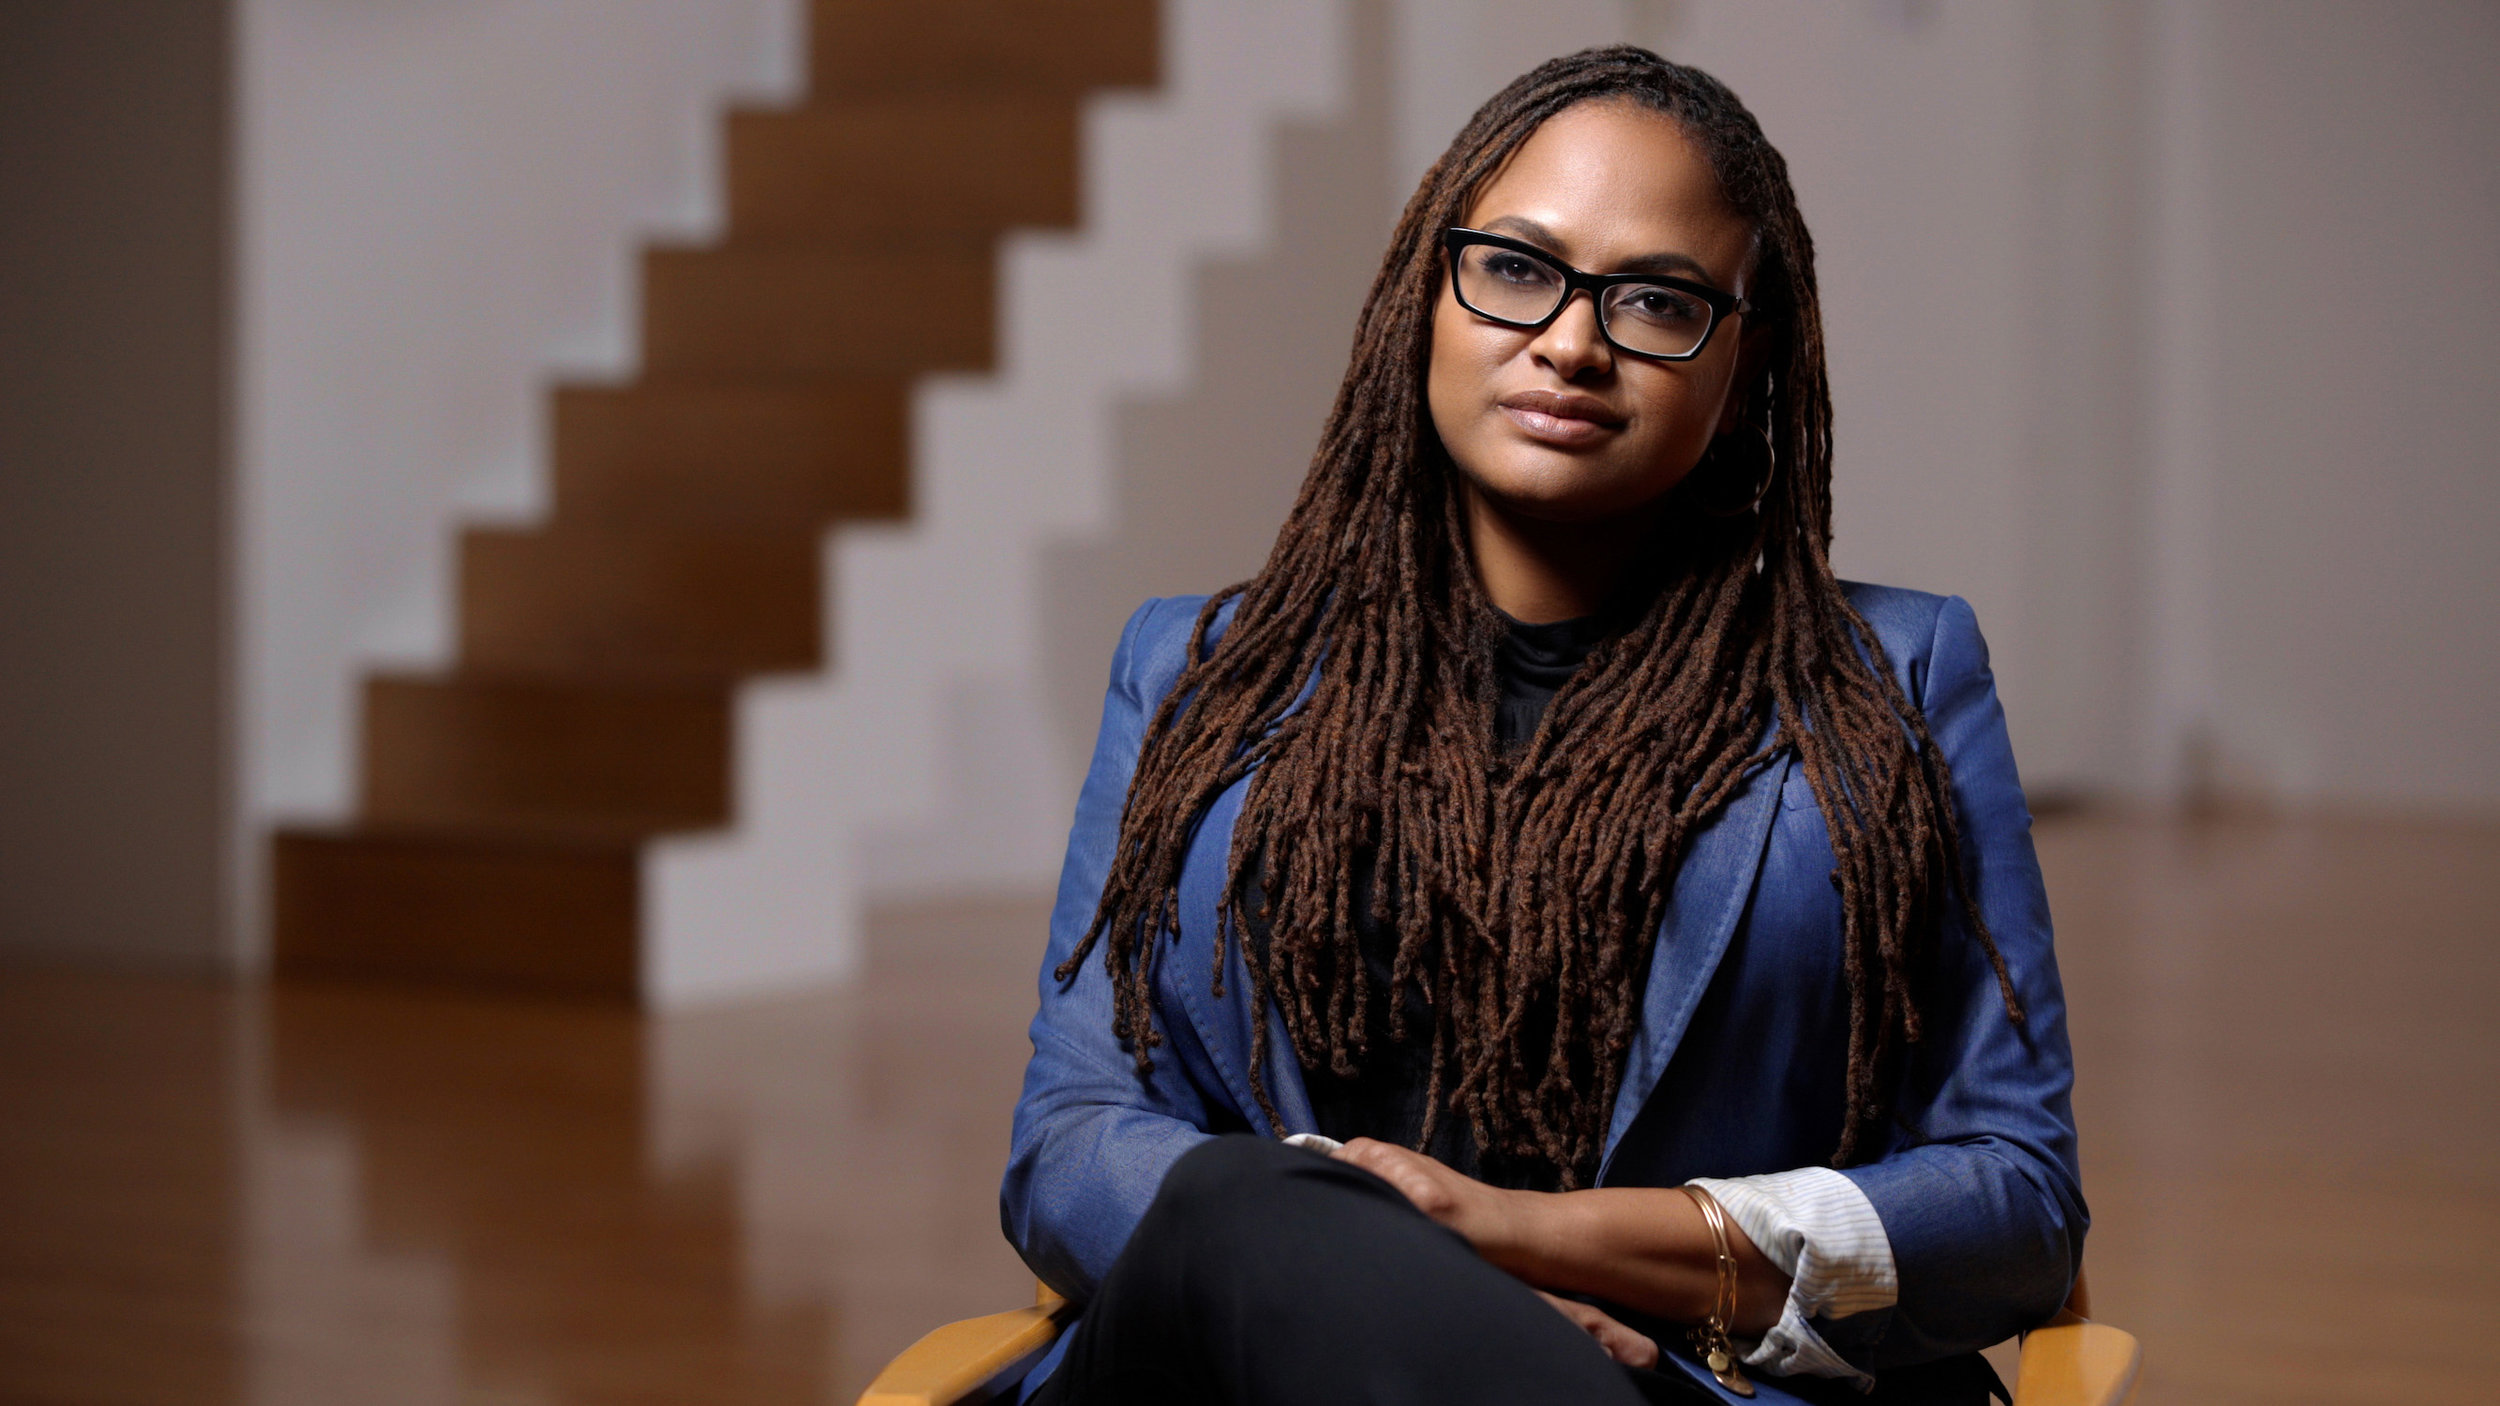 Ava DuVernay is one of the interviewees in Amy Adrion's Half the Picture. CREDIT: Sundance London